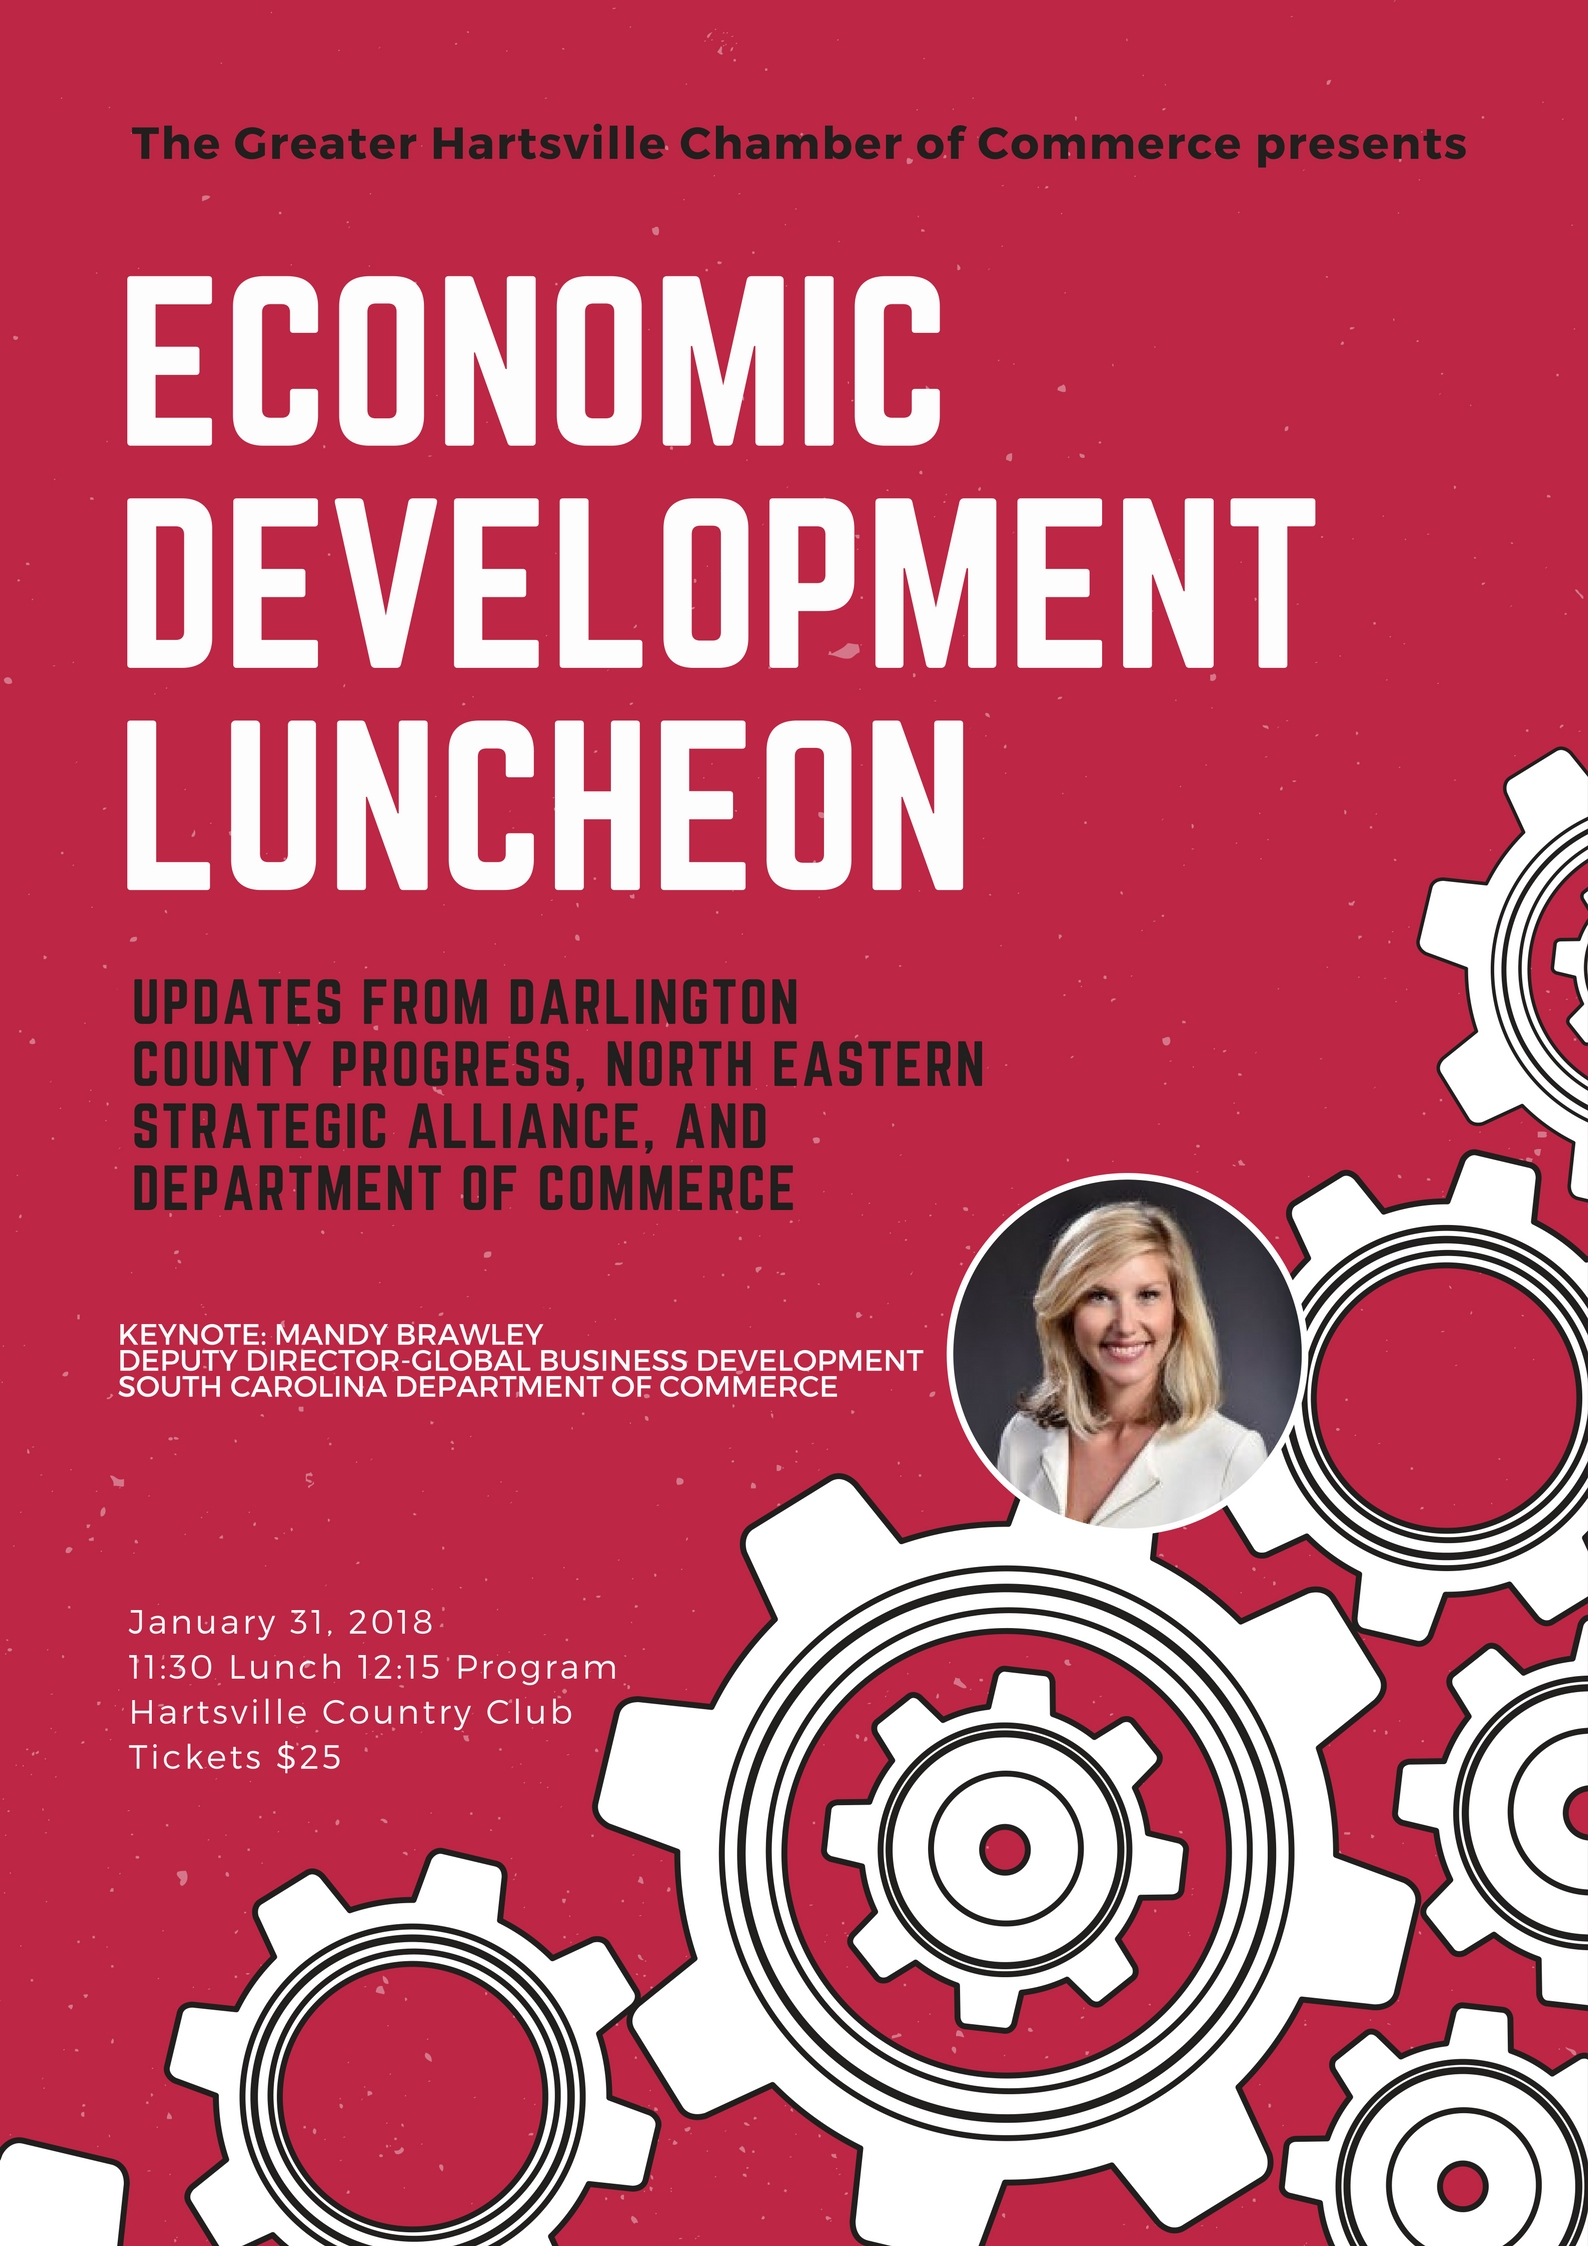 Economic-Development-Luncheon.jpg